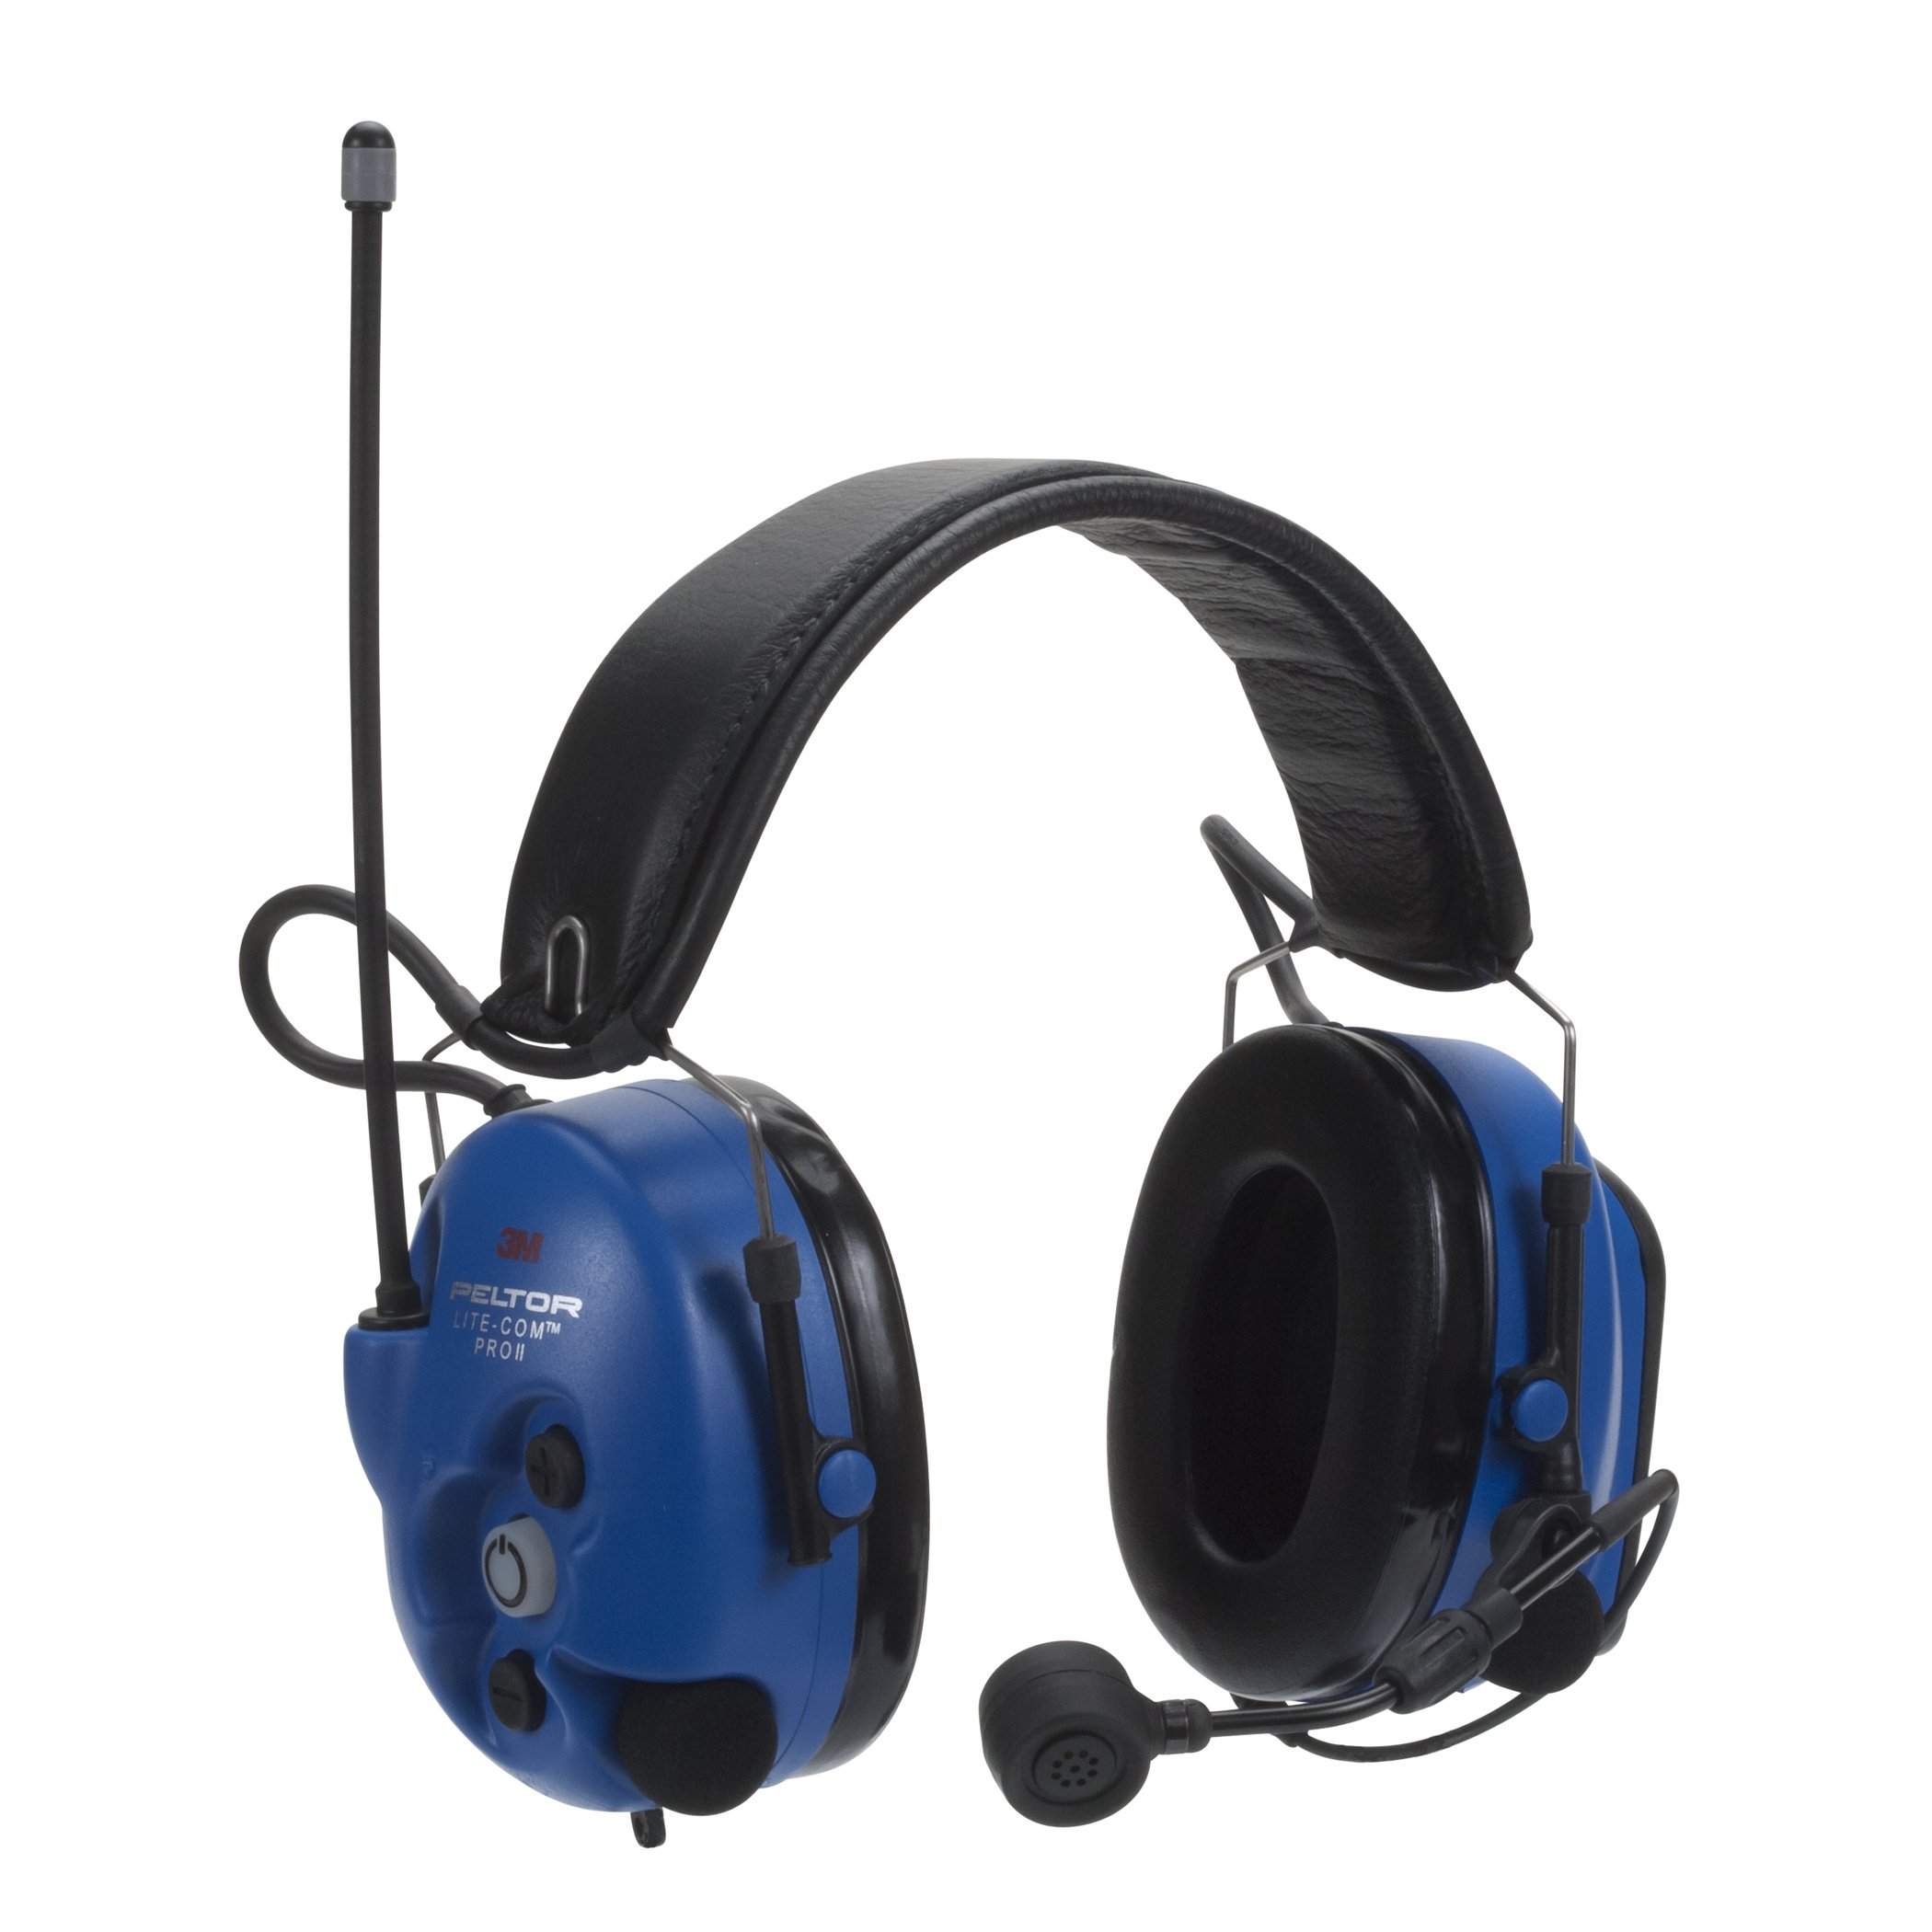 3M Peltor Lite-Com Pro II Two Way Radio Headset MT7H7F4010-NA-50, Communications Headset Headband (Pack of 1) by 3M Personal Protective Equipment (Image #1)